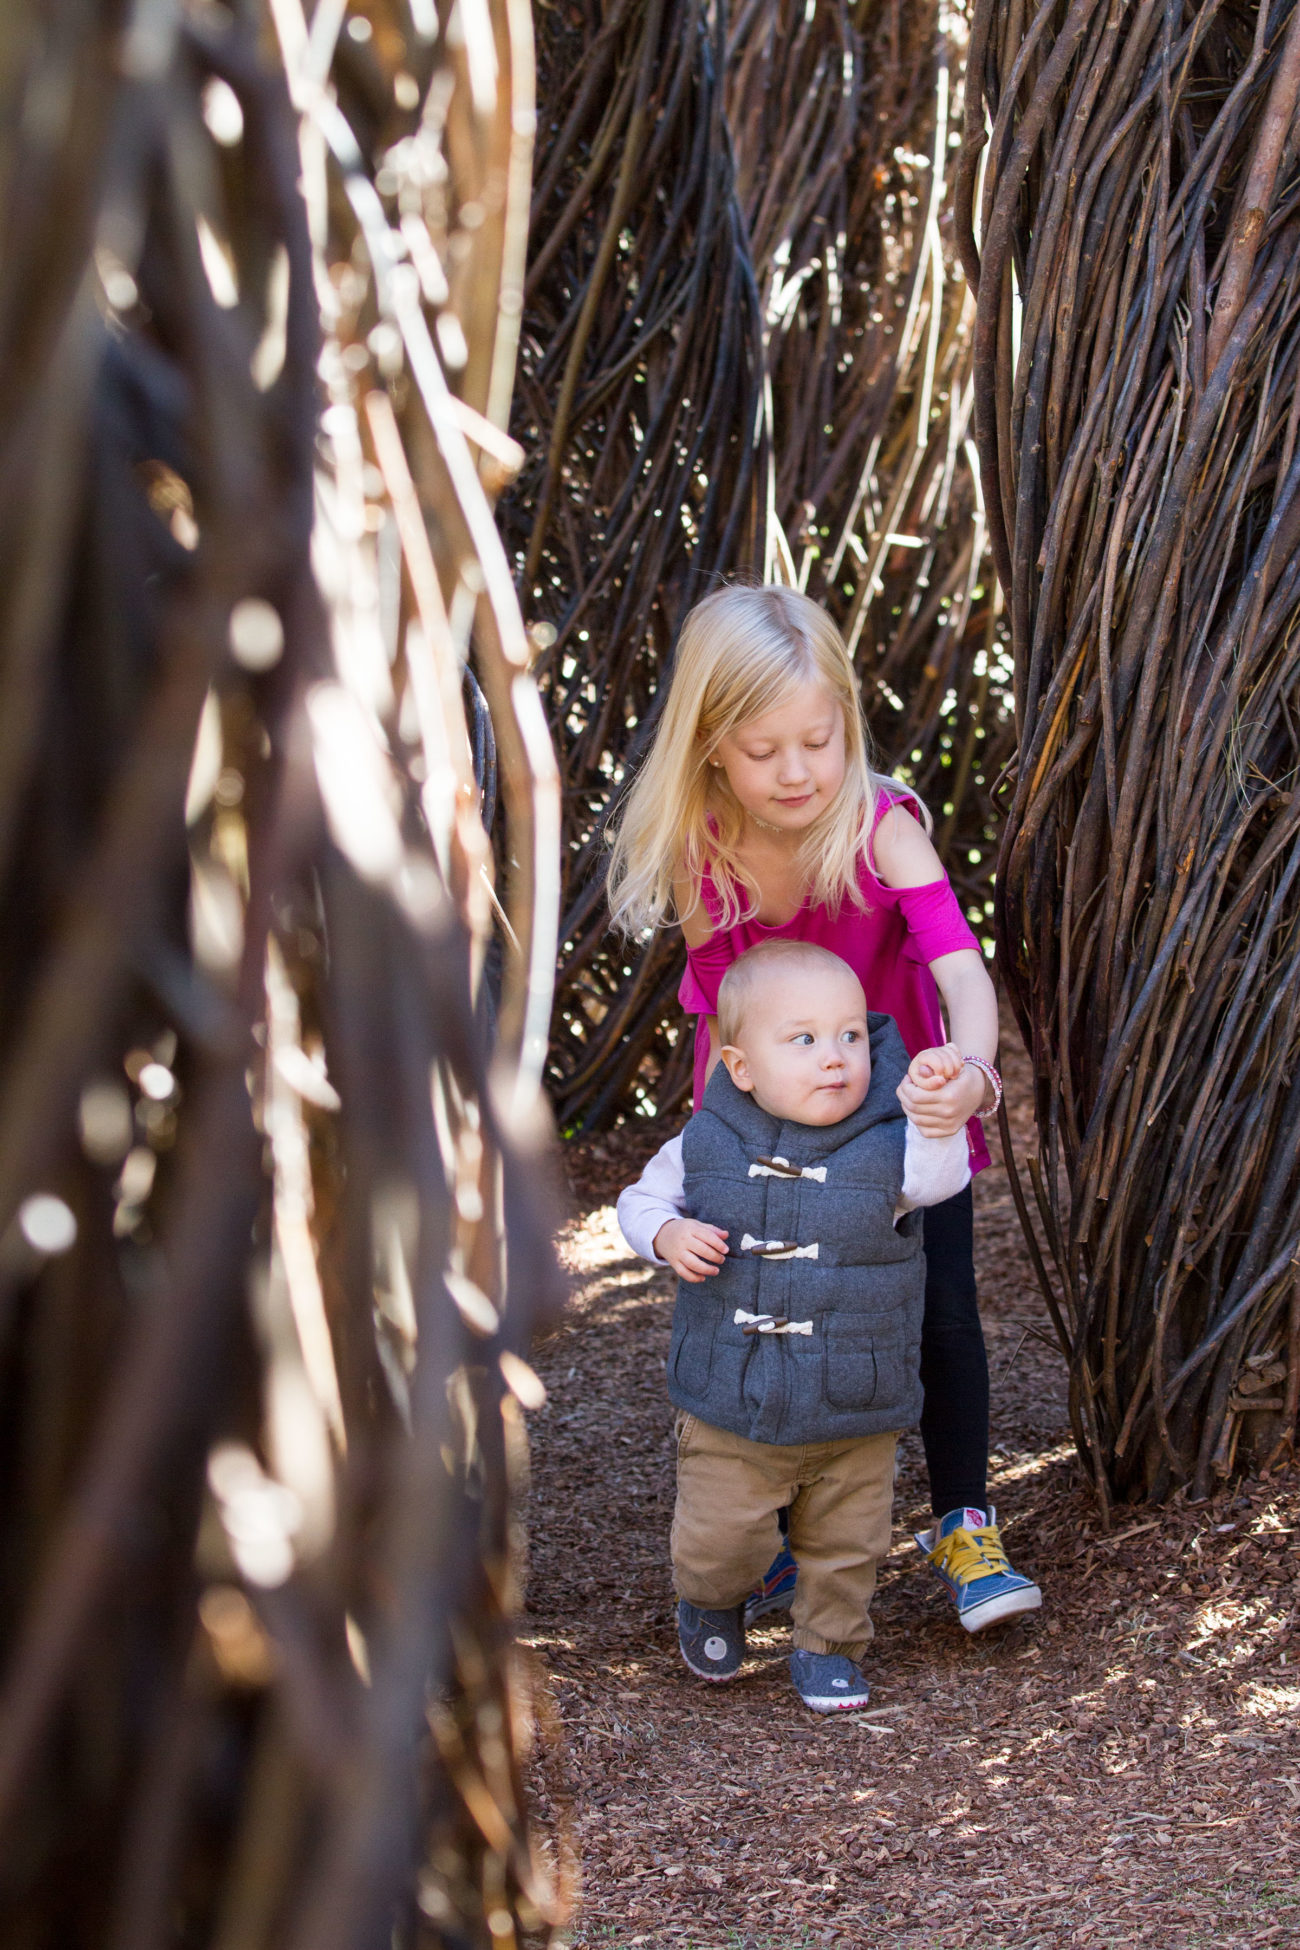 A young girl leads a toddler through a sapling maze.